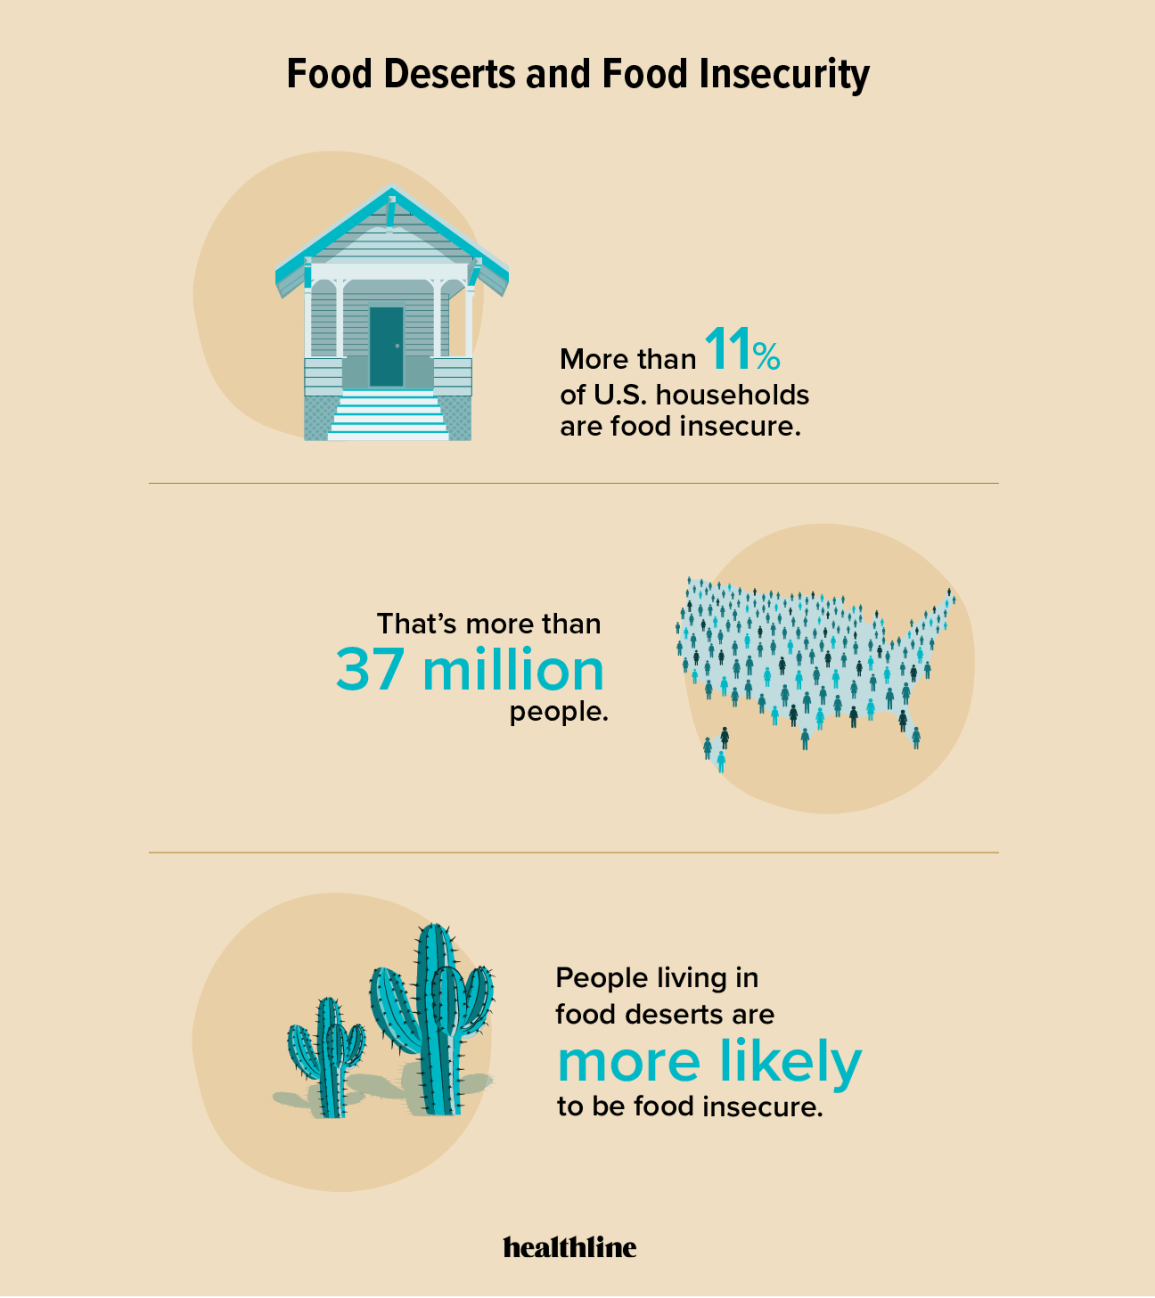 infographic with house, outline of United States, cactus, and statistics